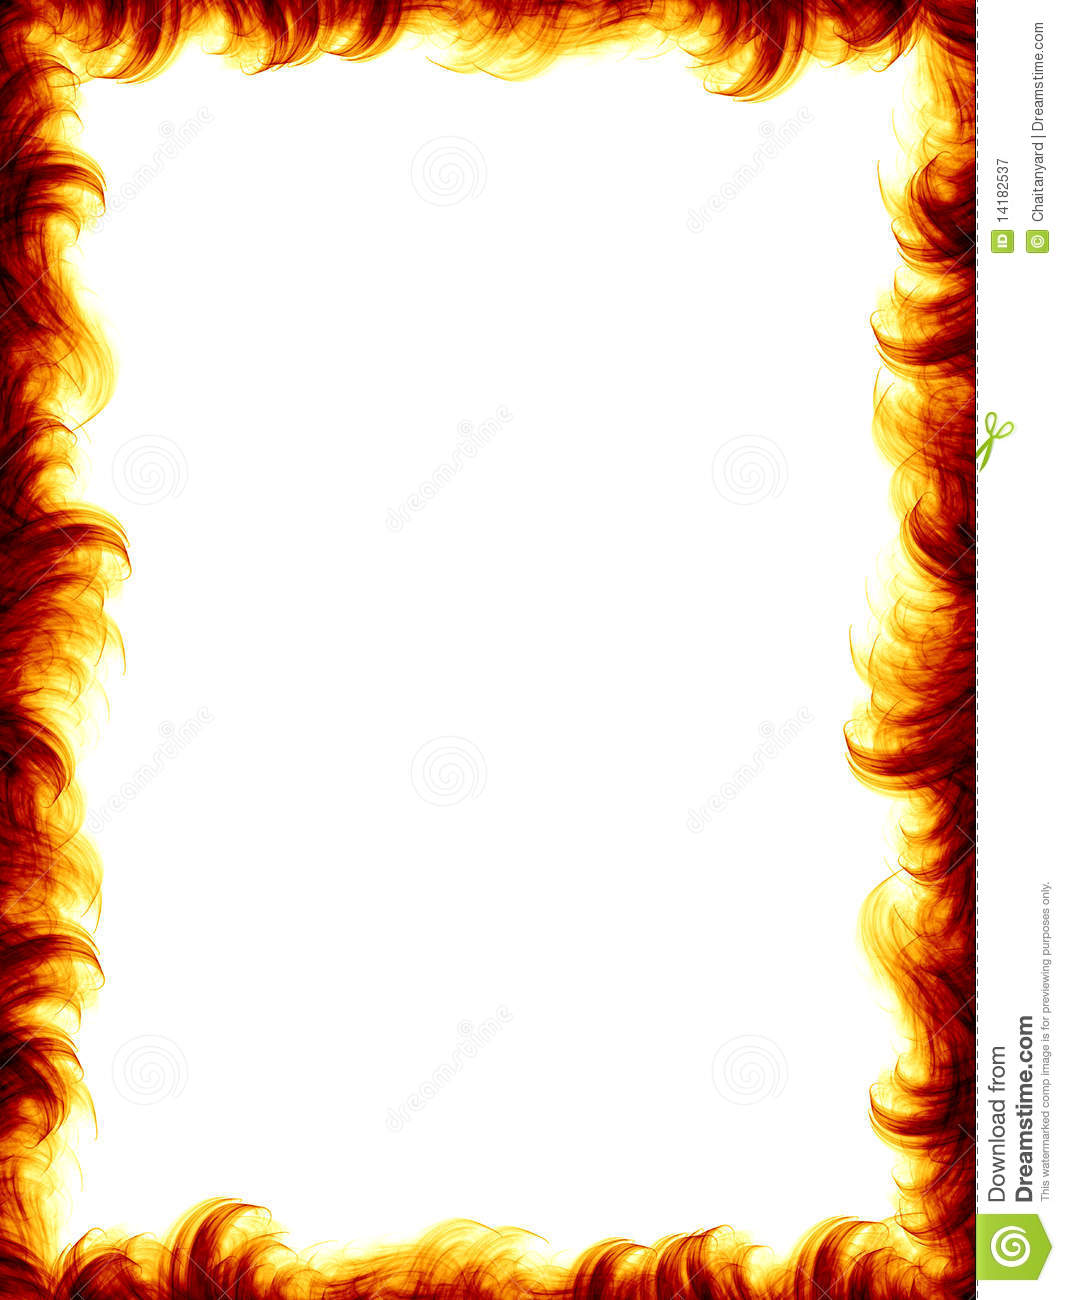 The fire border on white background, burning flames design.